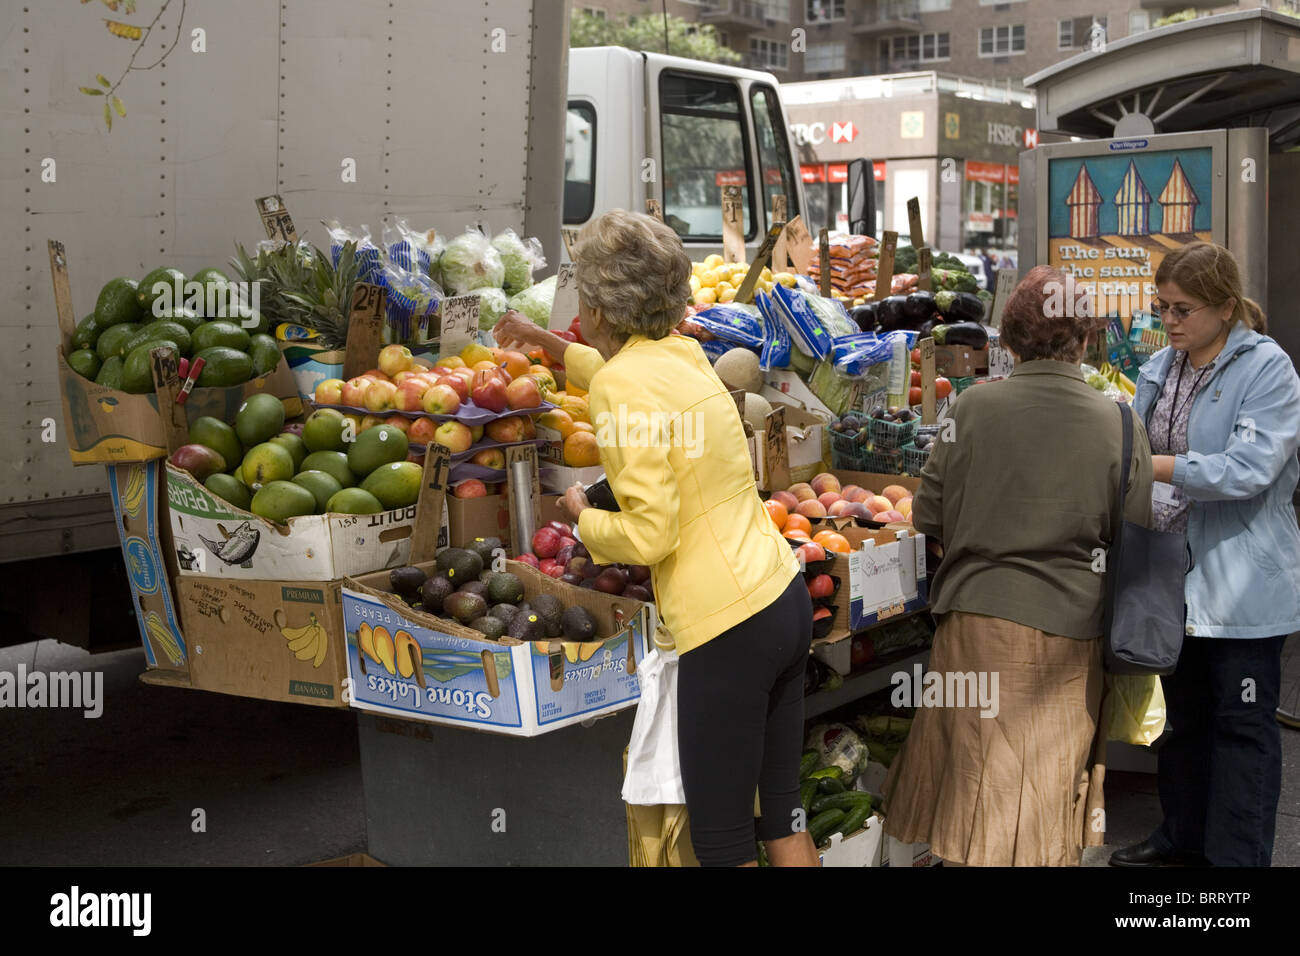 Neighborhood fruitstand amidst the fumes and congestion on Lexington Avenue in New York City. Stock Photo